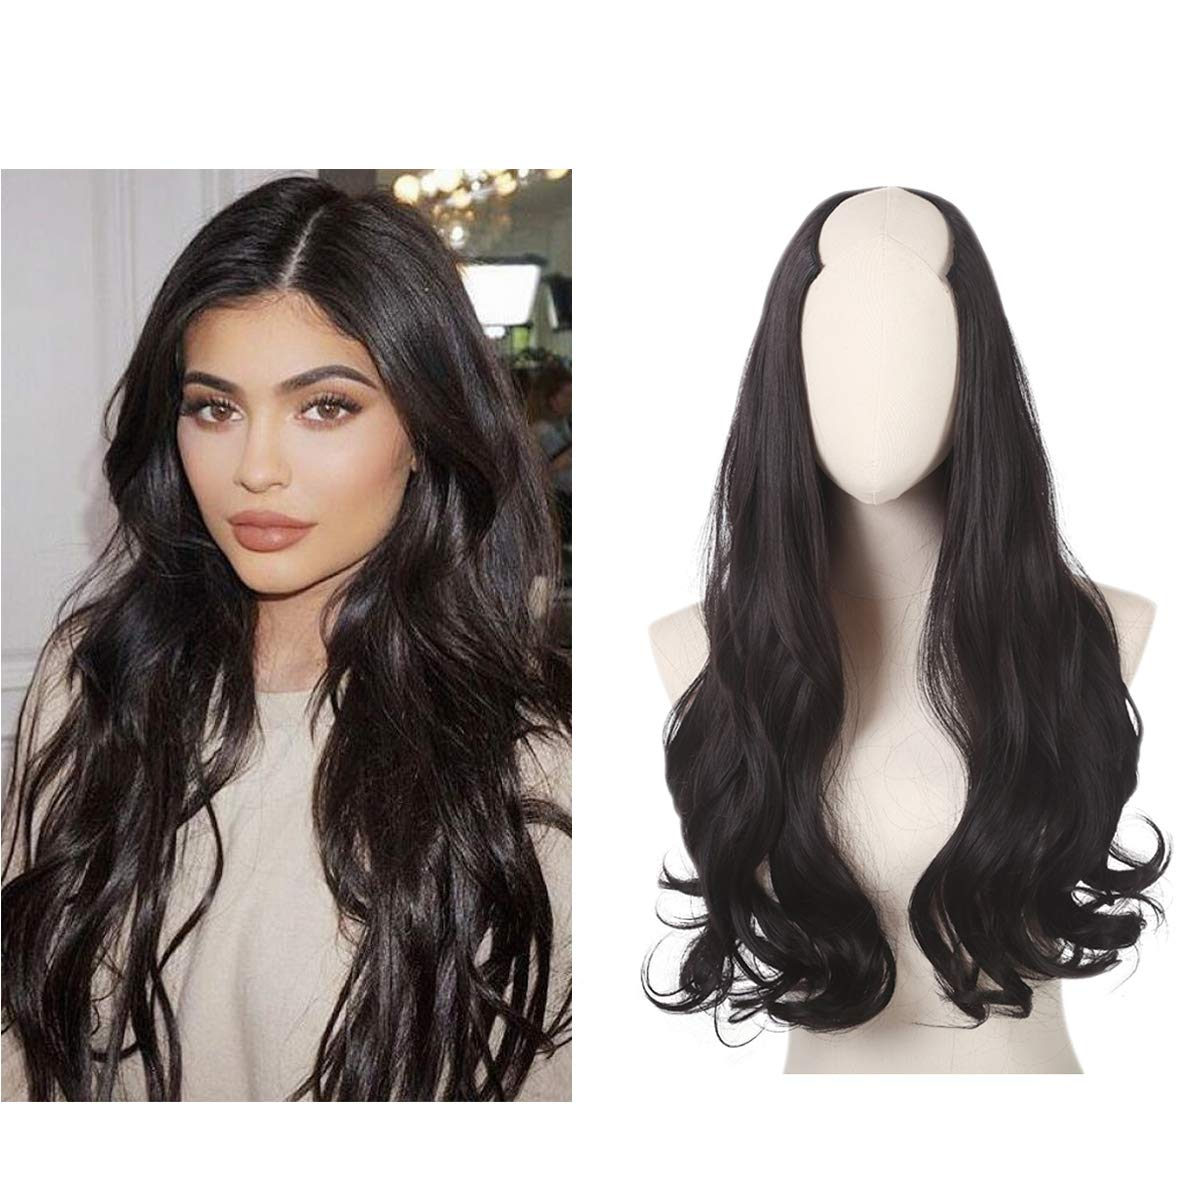 U part Half Wig Clip in Black Body Wave Curl Thick Full Head Synthetic Hair Extensions Hairpiece For Women None Lace Front Cosaplay Wigs Kanekalon Heat Resistant Fiber SARLA 24